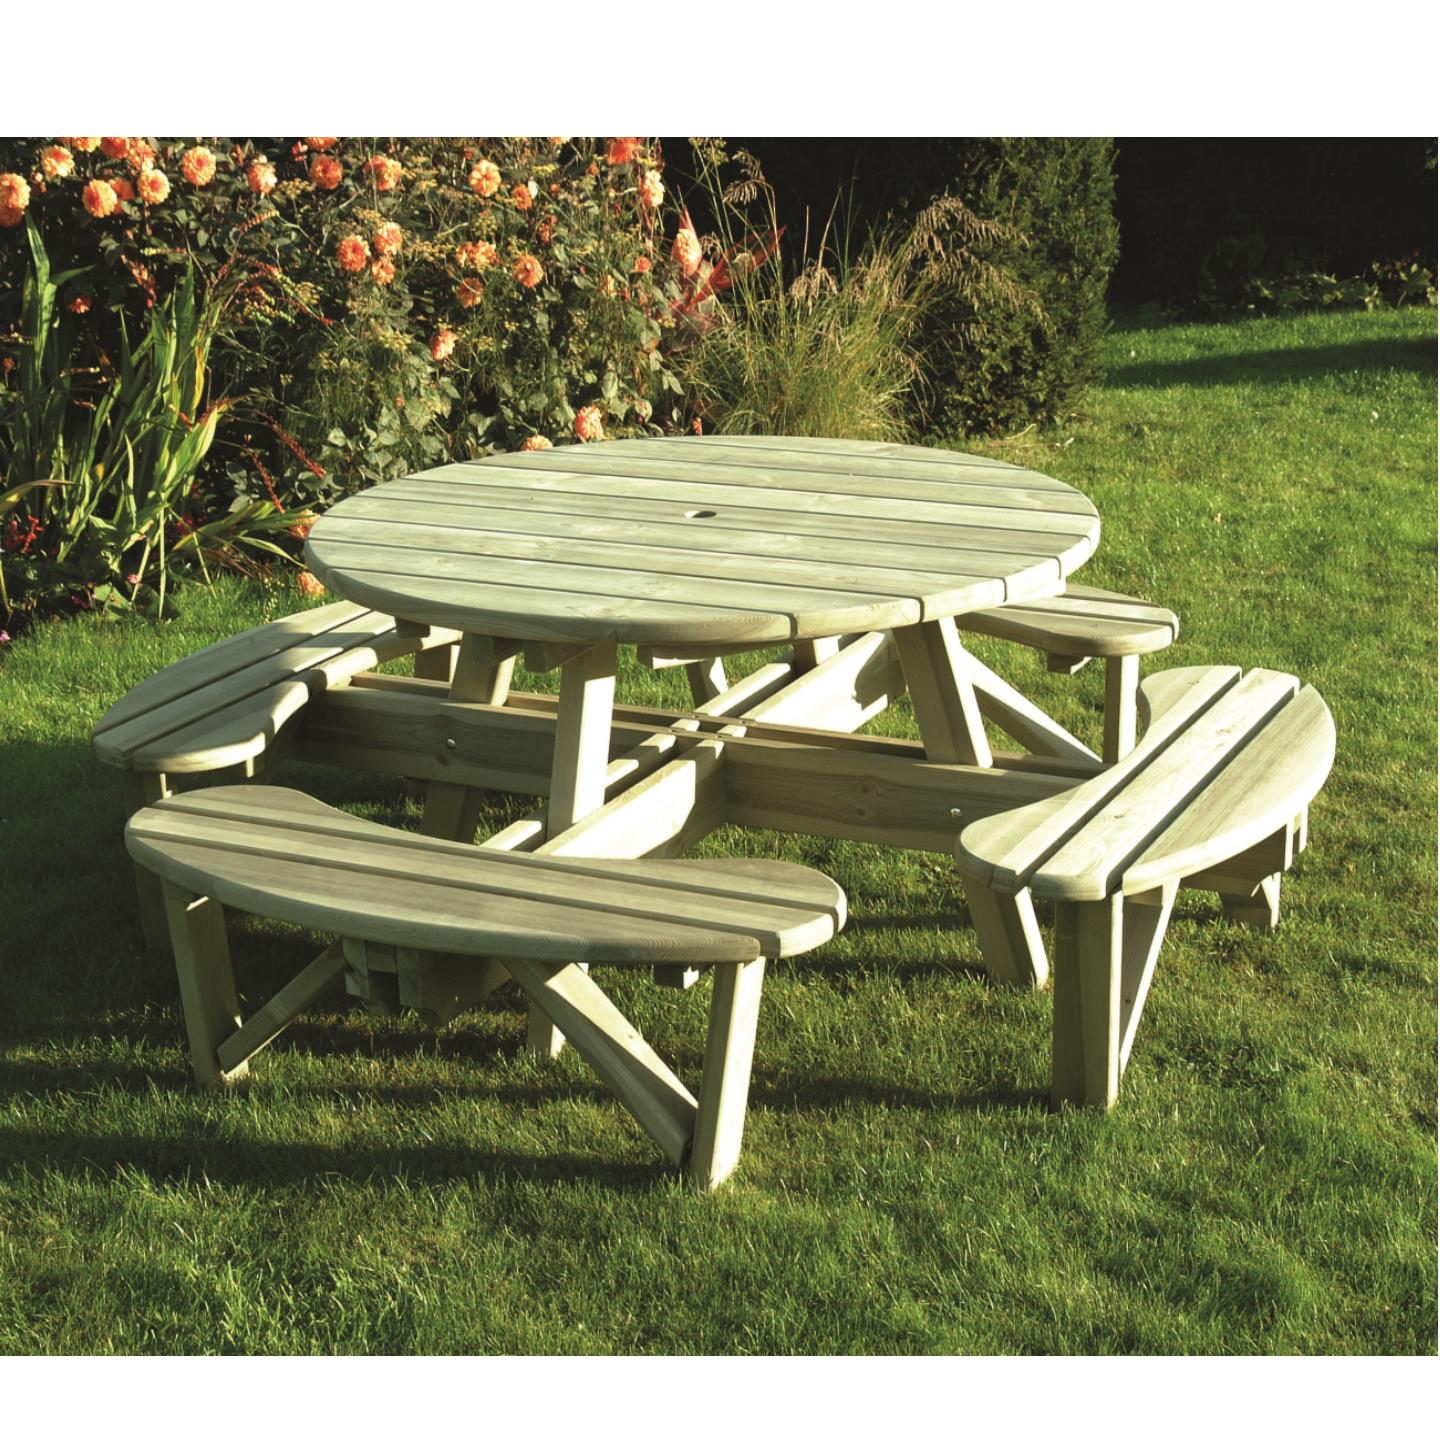 Outdoor Furniture Ringwood Garden Furniture Chester Ringwood Fencing Quality Furniture